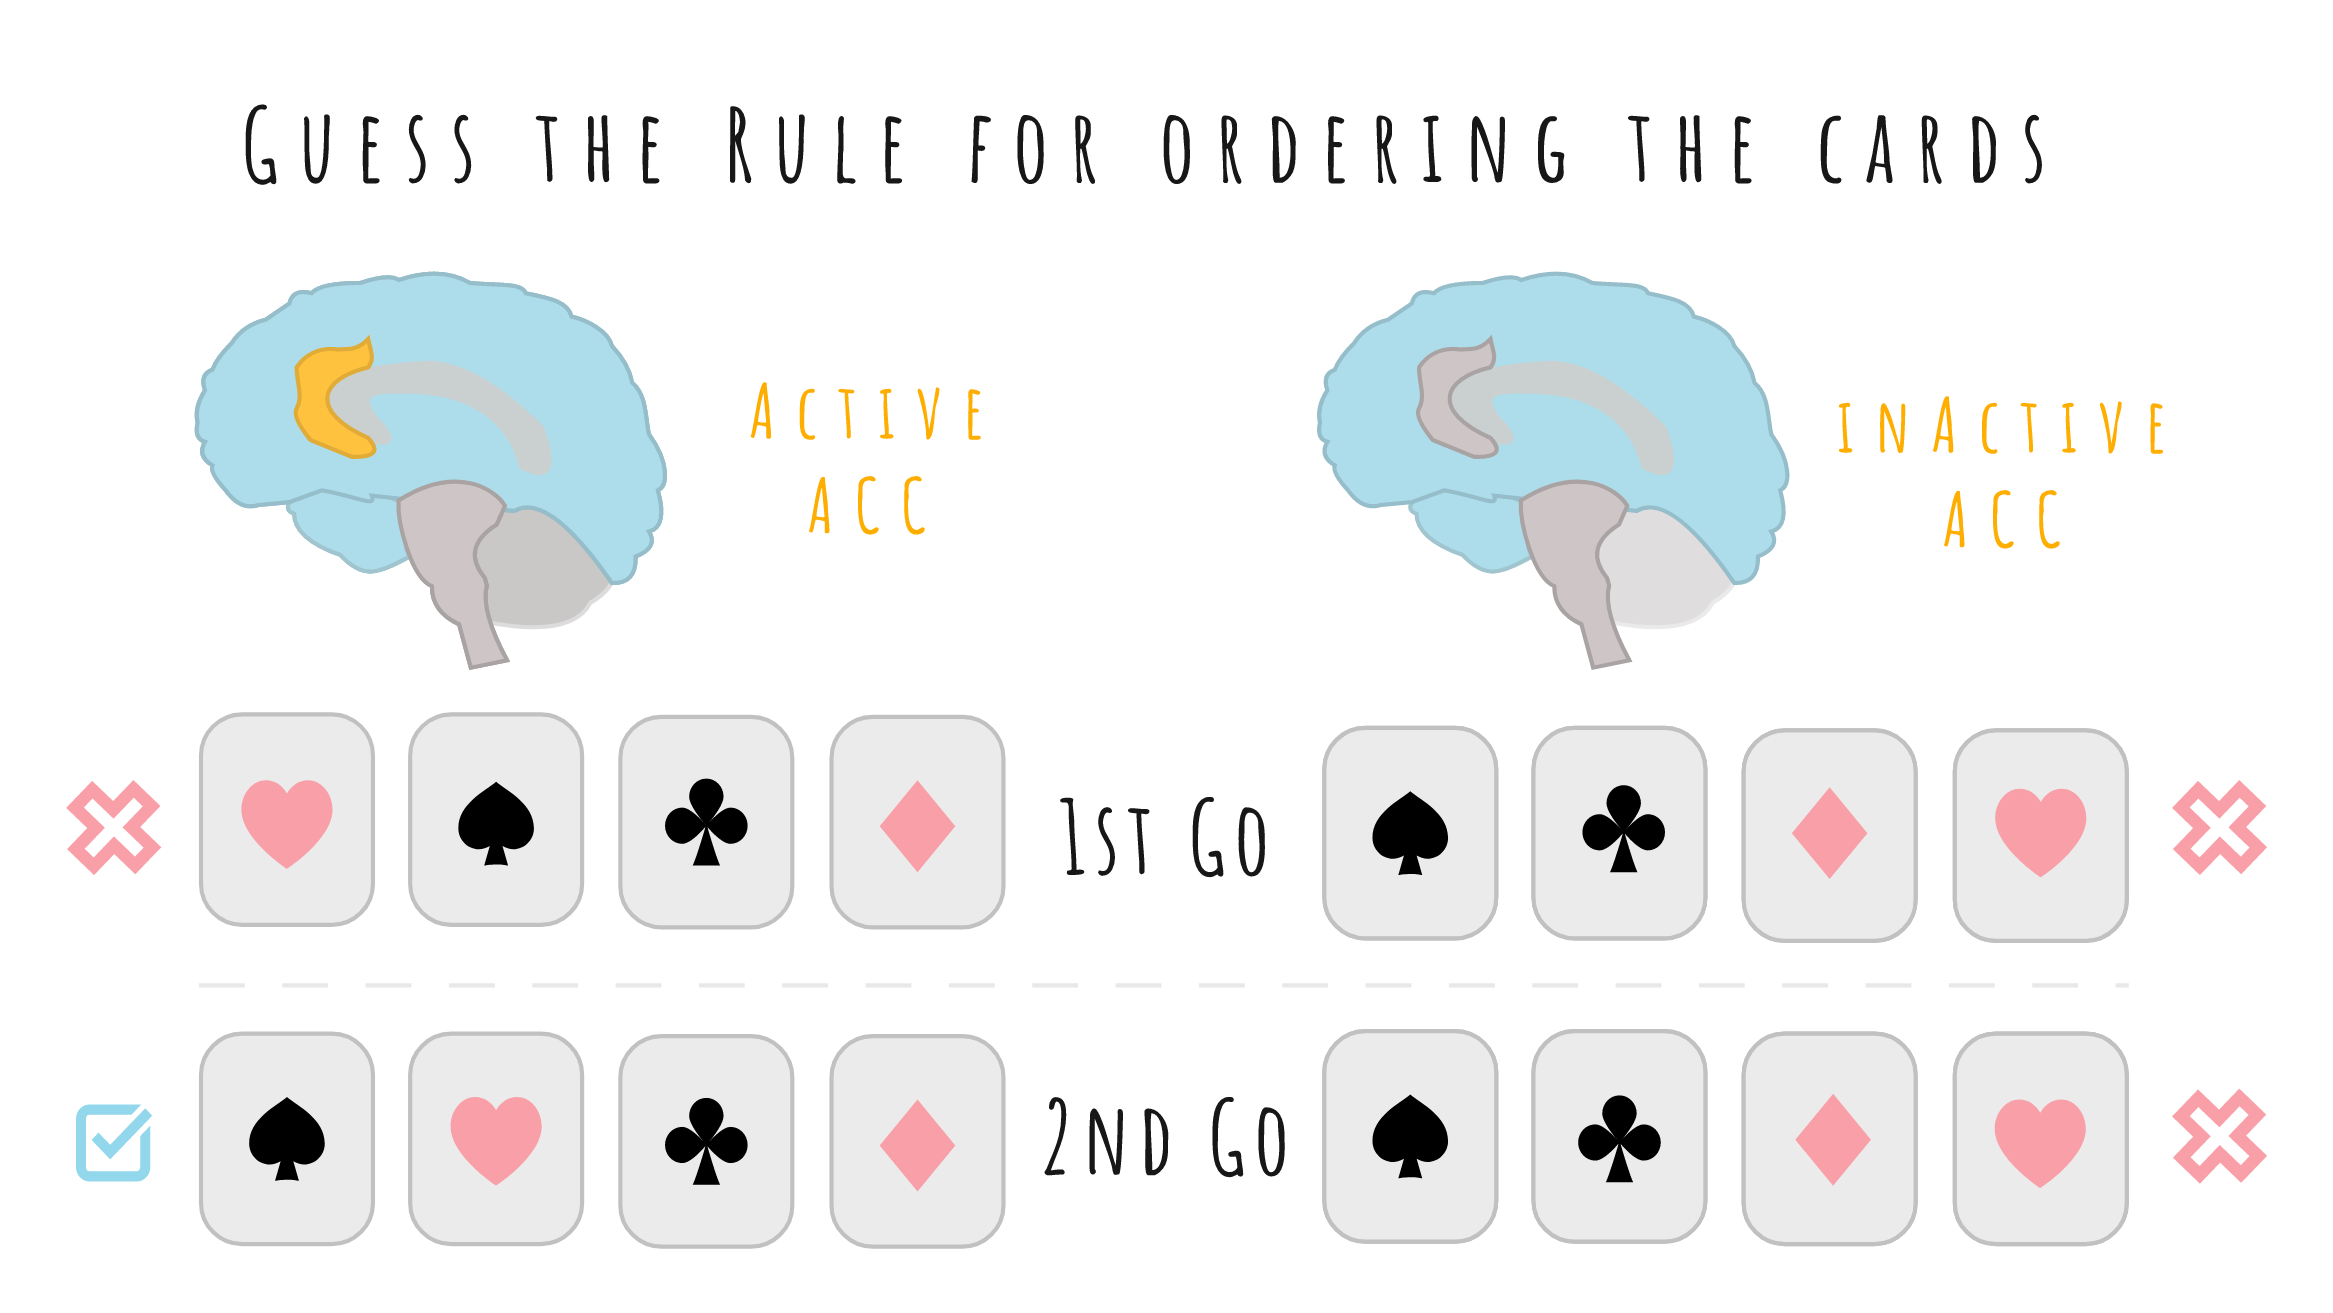 Pattern of cards is incorrect deducted without ACC activation